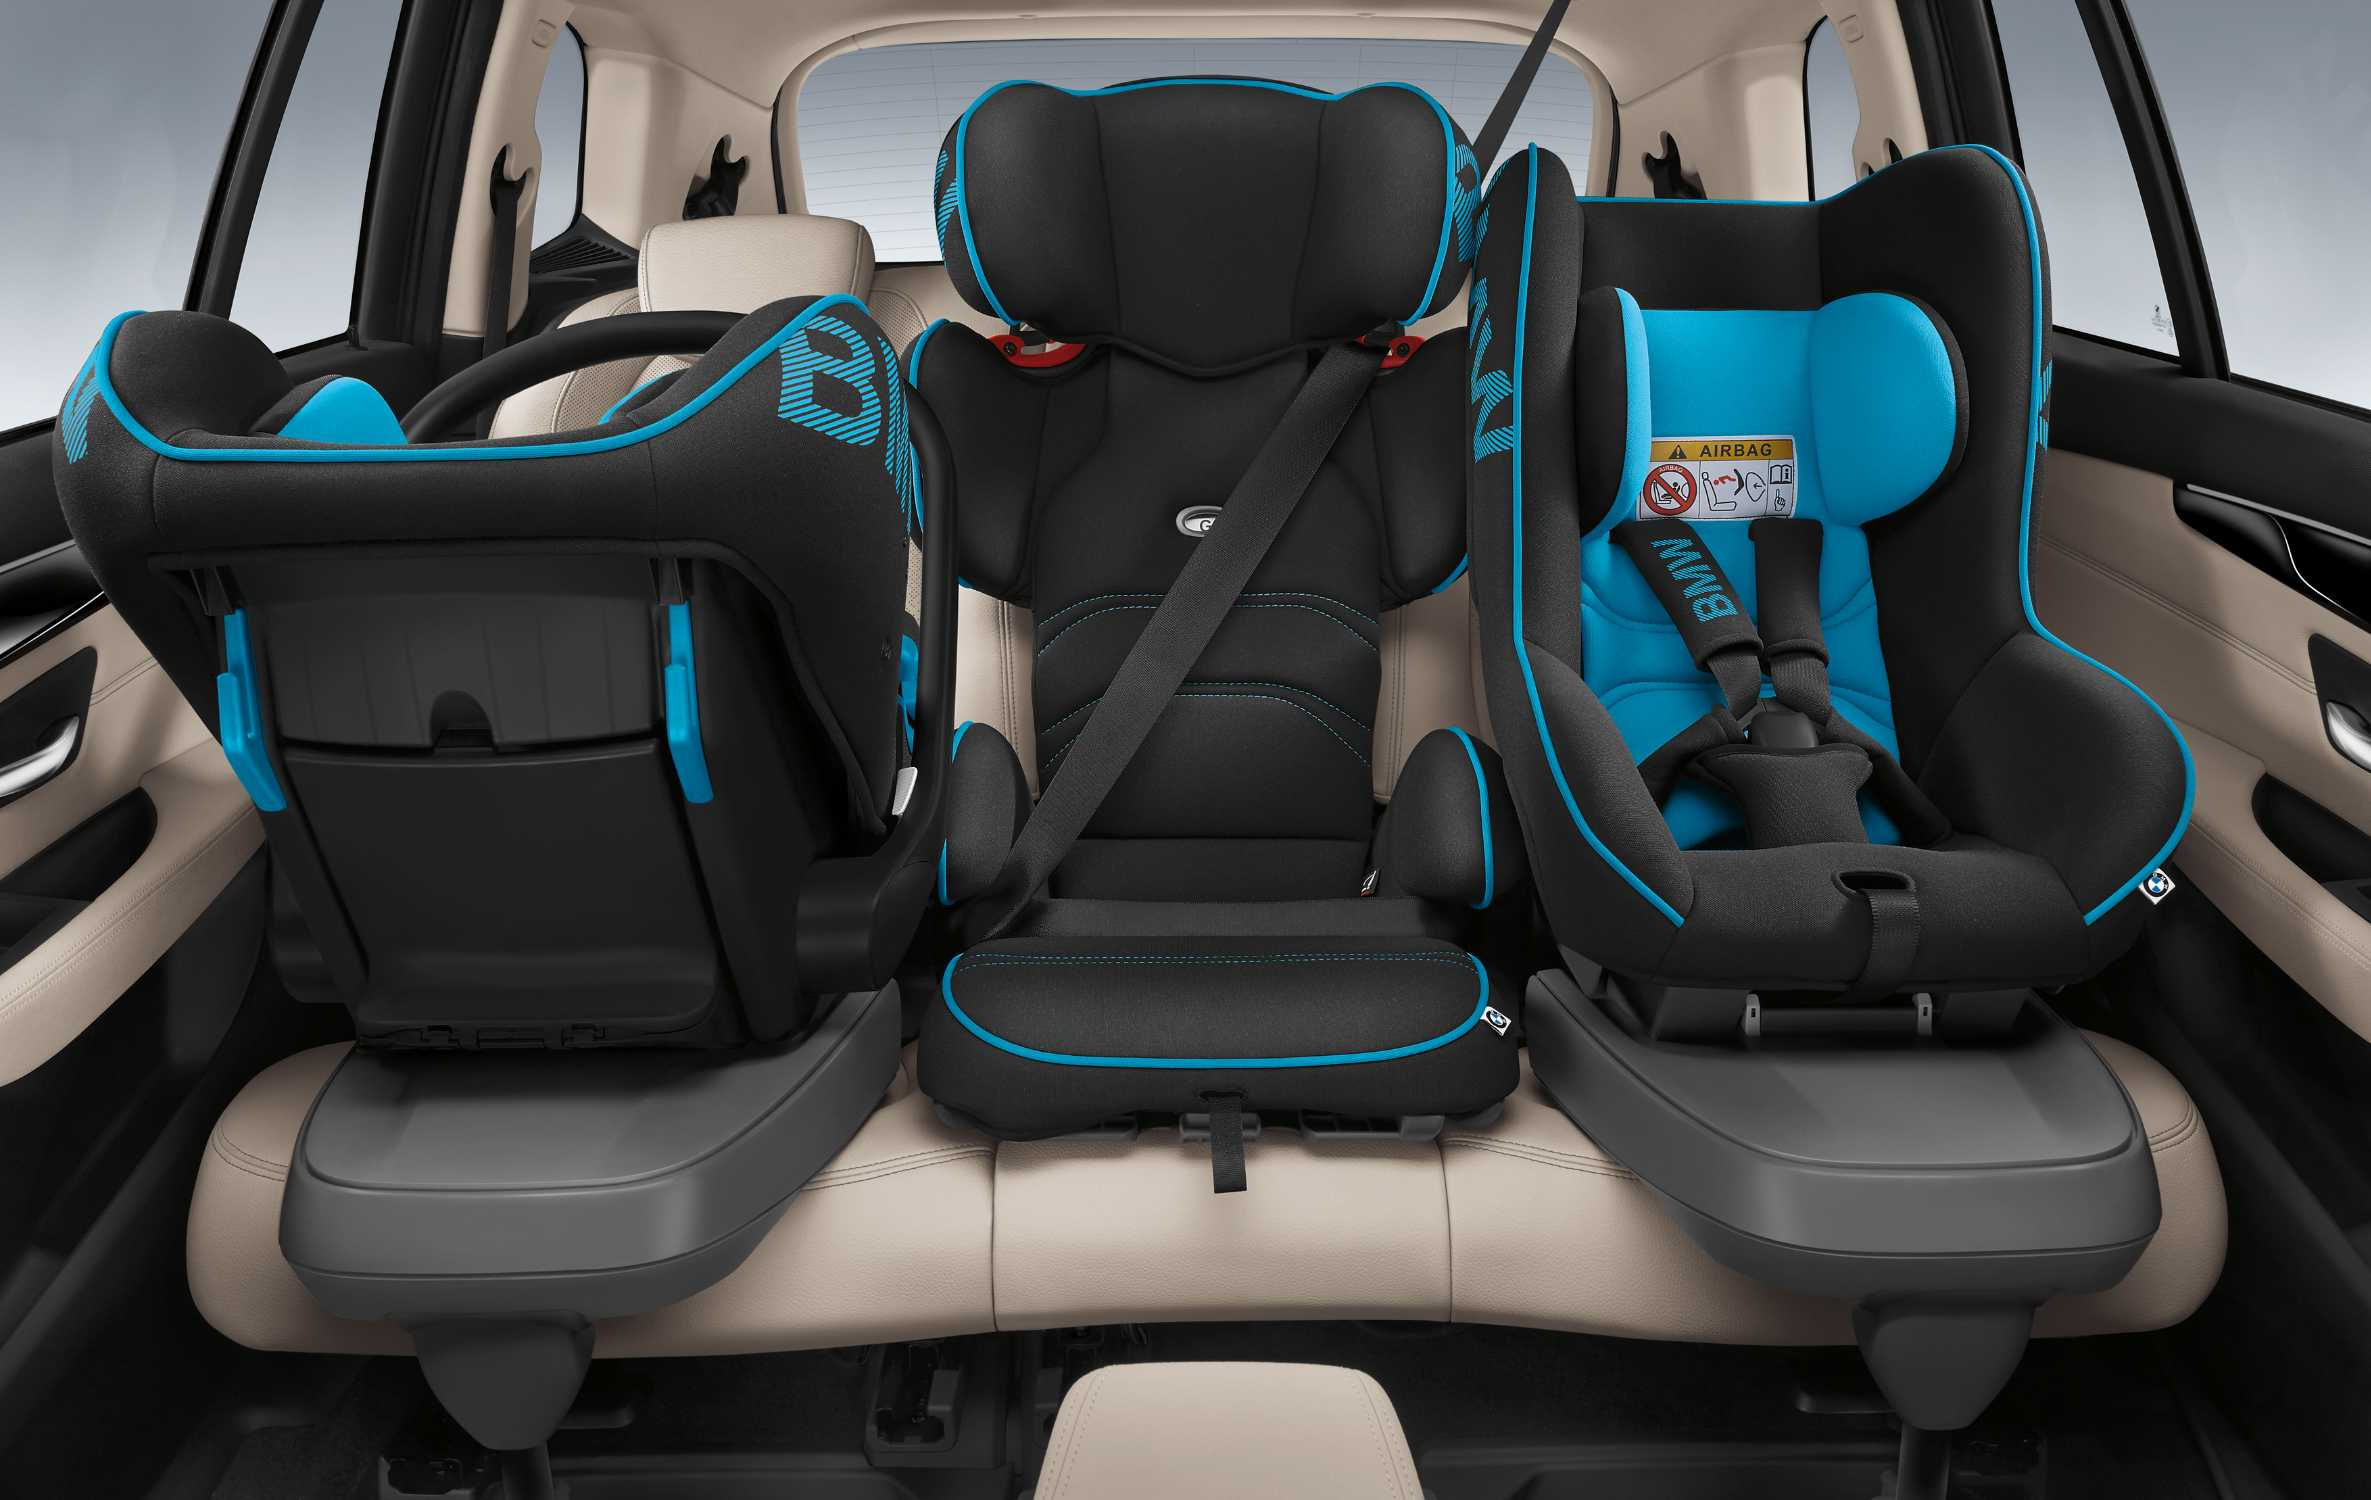 bmw 2 series gran tourer accessories bmw baby seat 0 with isofix base 02 2015. Black Bedroom Furniture Sets. Home Design Ideas